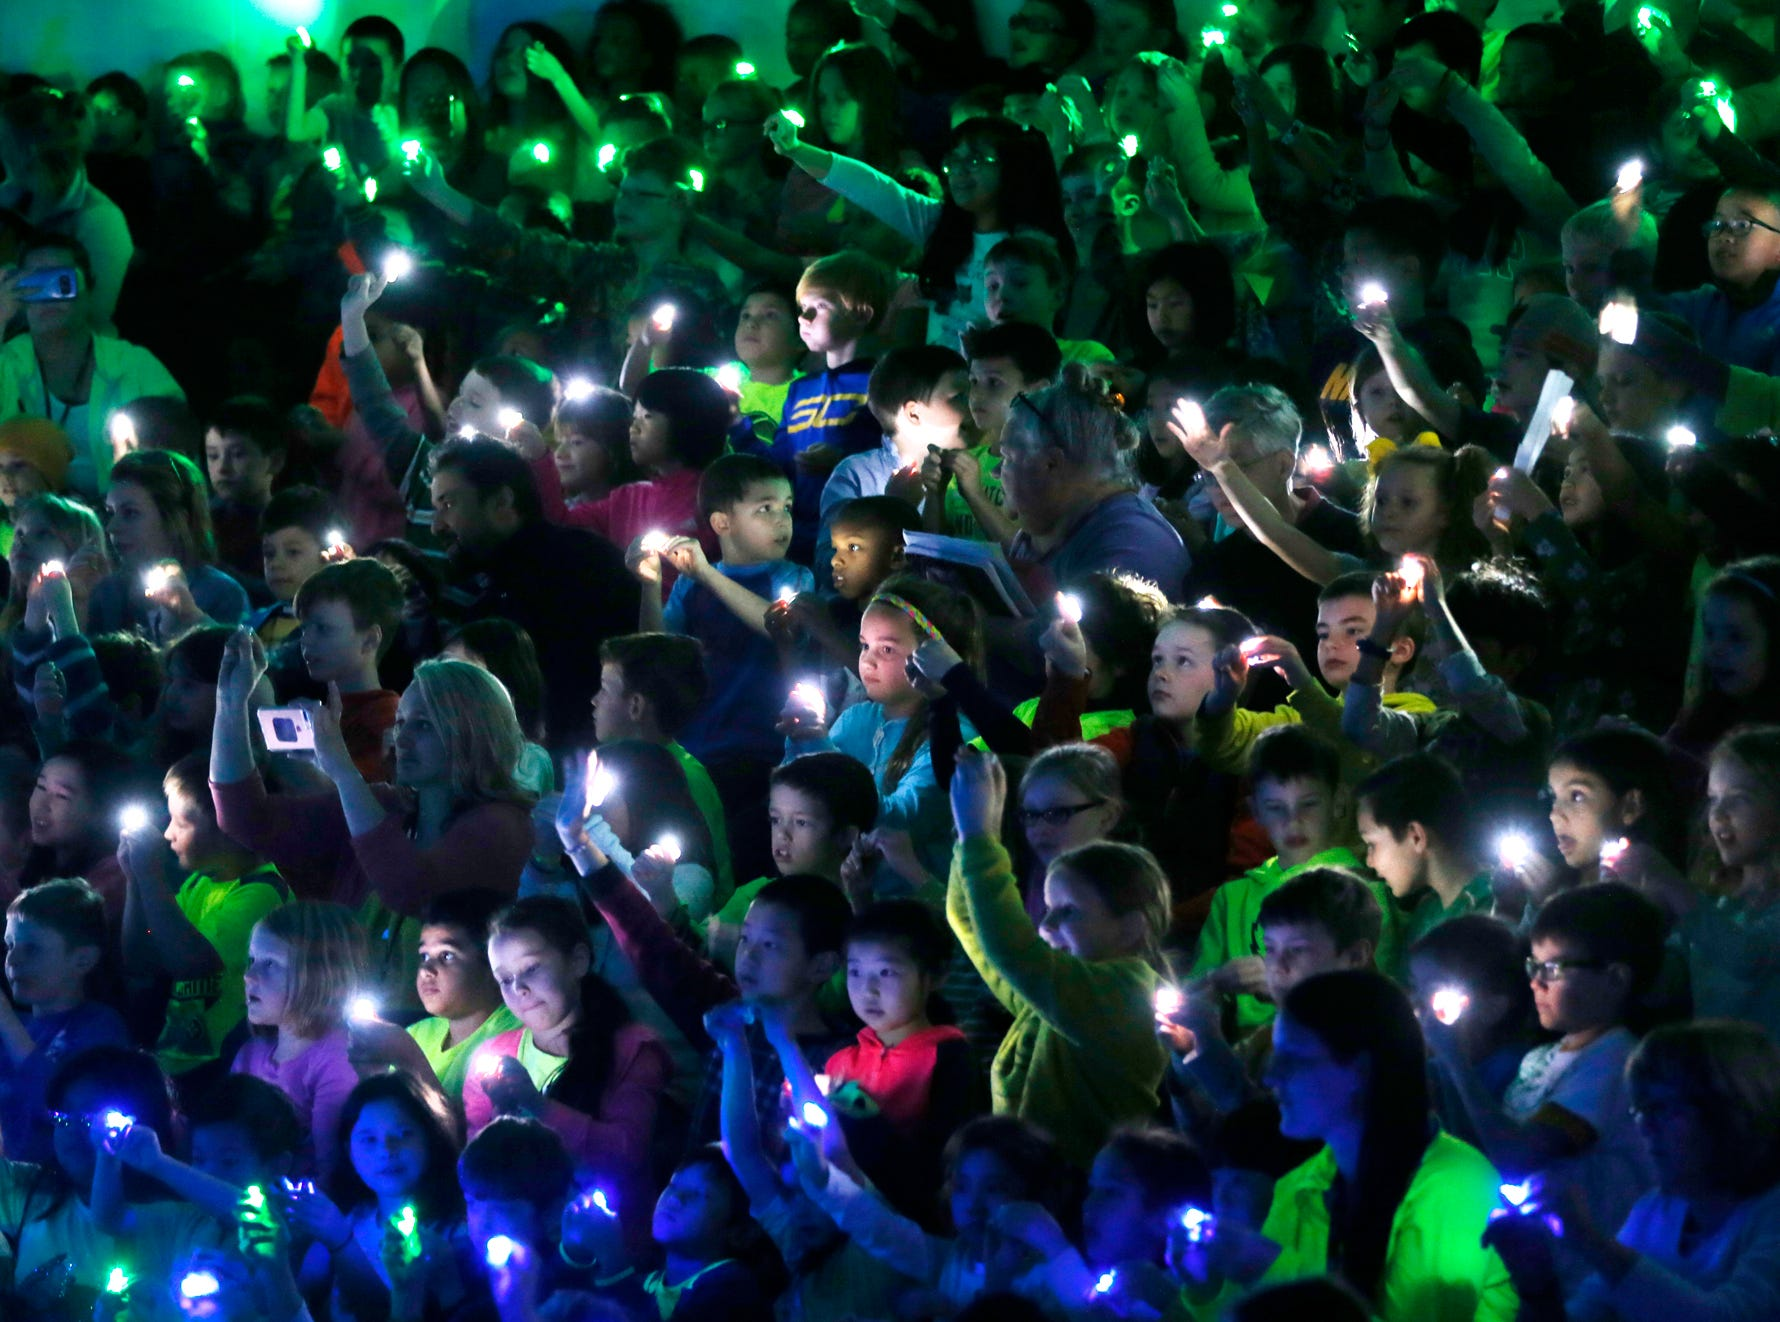 Students shine lights simulating fireflies as they greet Gov. Eric Holcomb Friday, March 23, 2018, at Cumberland Elementary School in West Lafayette. Gov. Holcomb came to the school to sign a bill naming the Say's Firefly as the Indiana state insect.